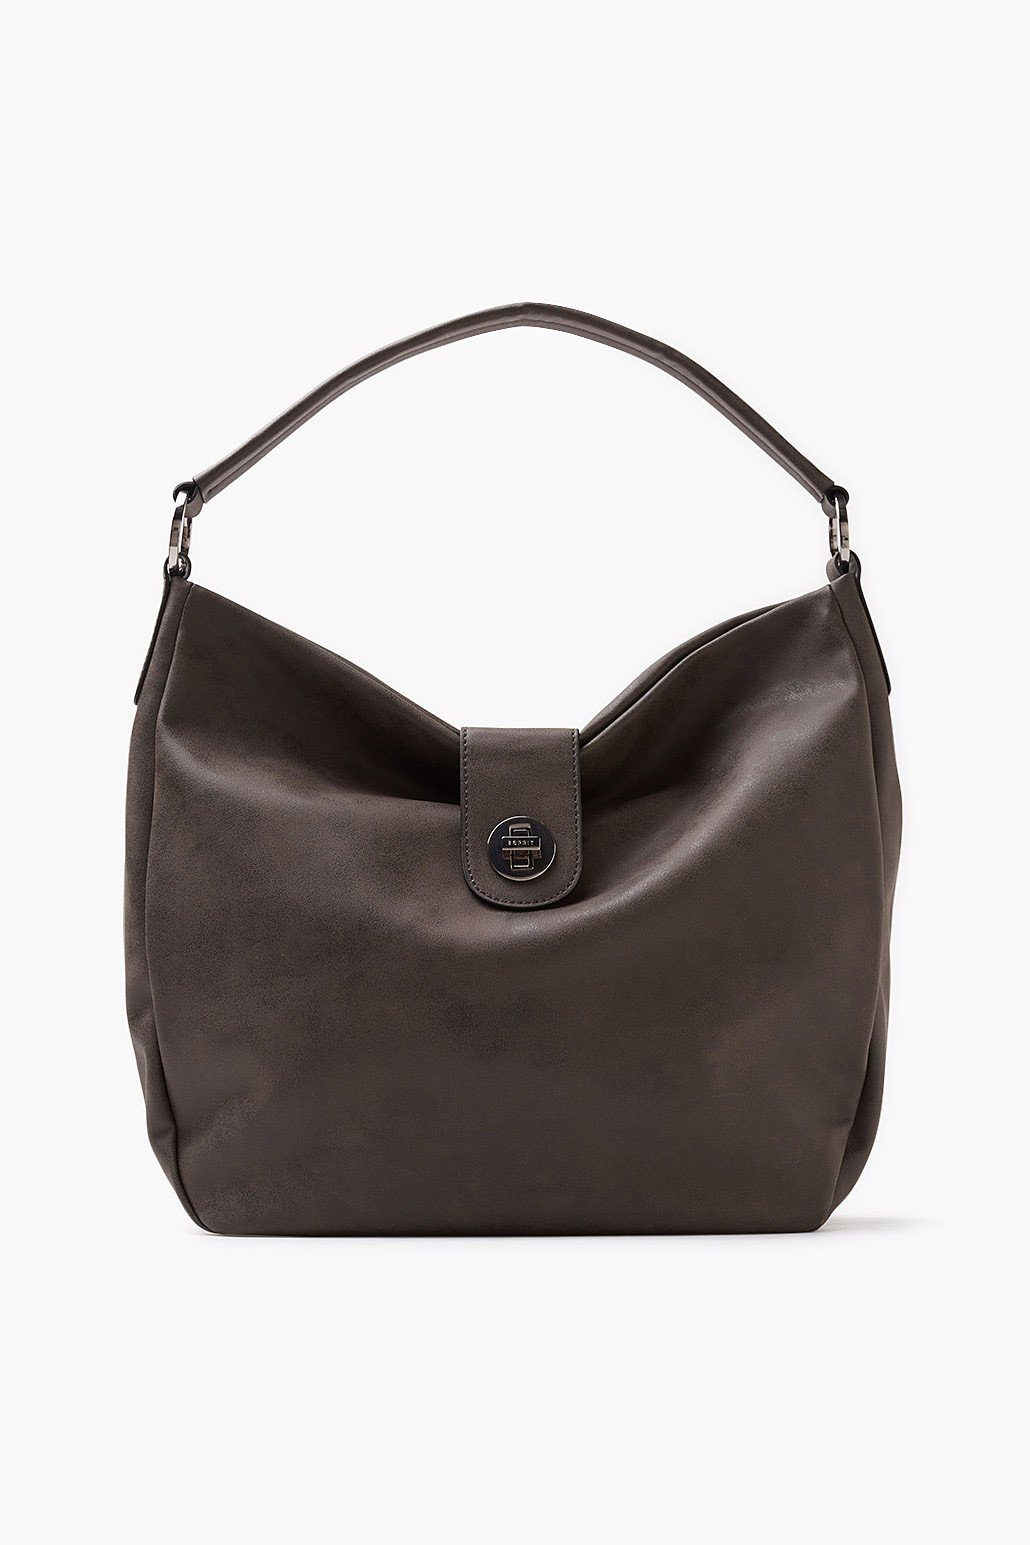 ESPRIT CASUAL Hobo Bag in gebrushter Lederoptik